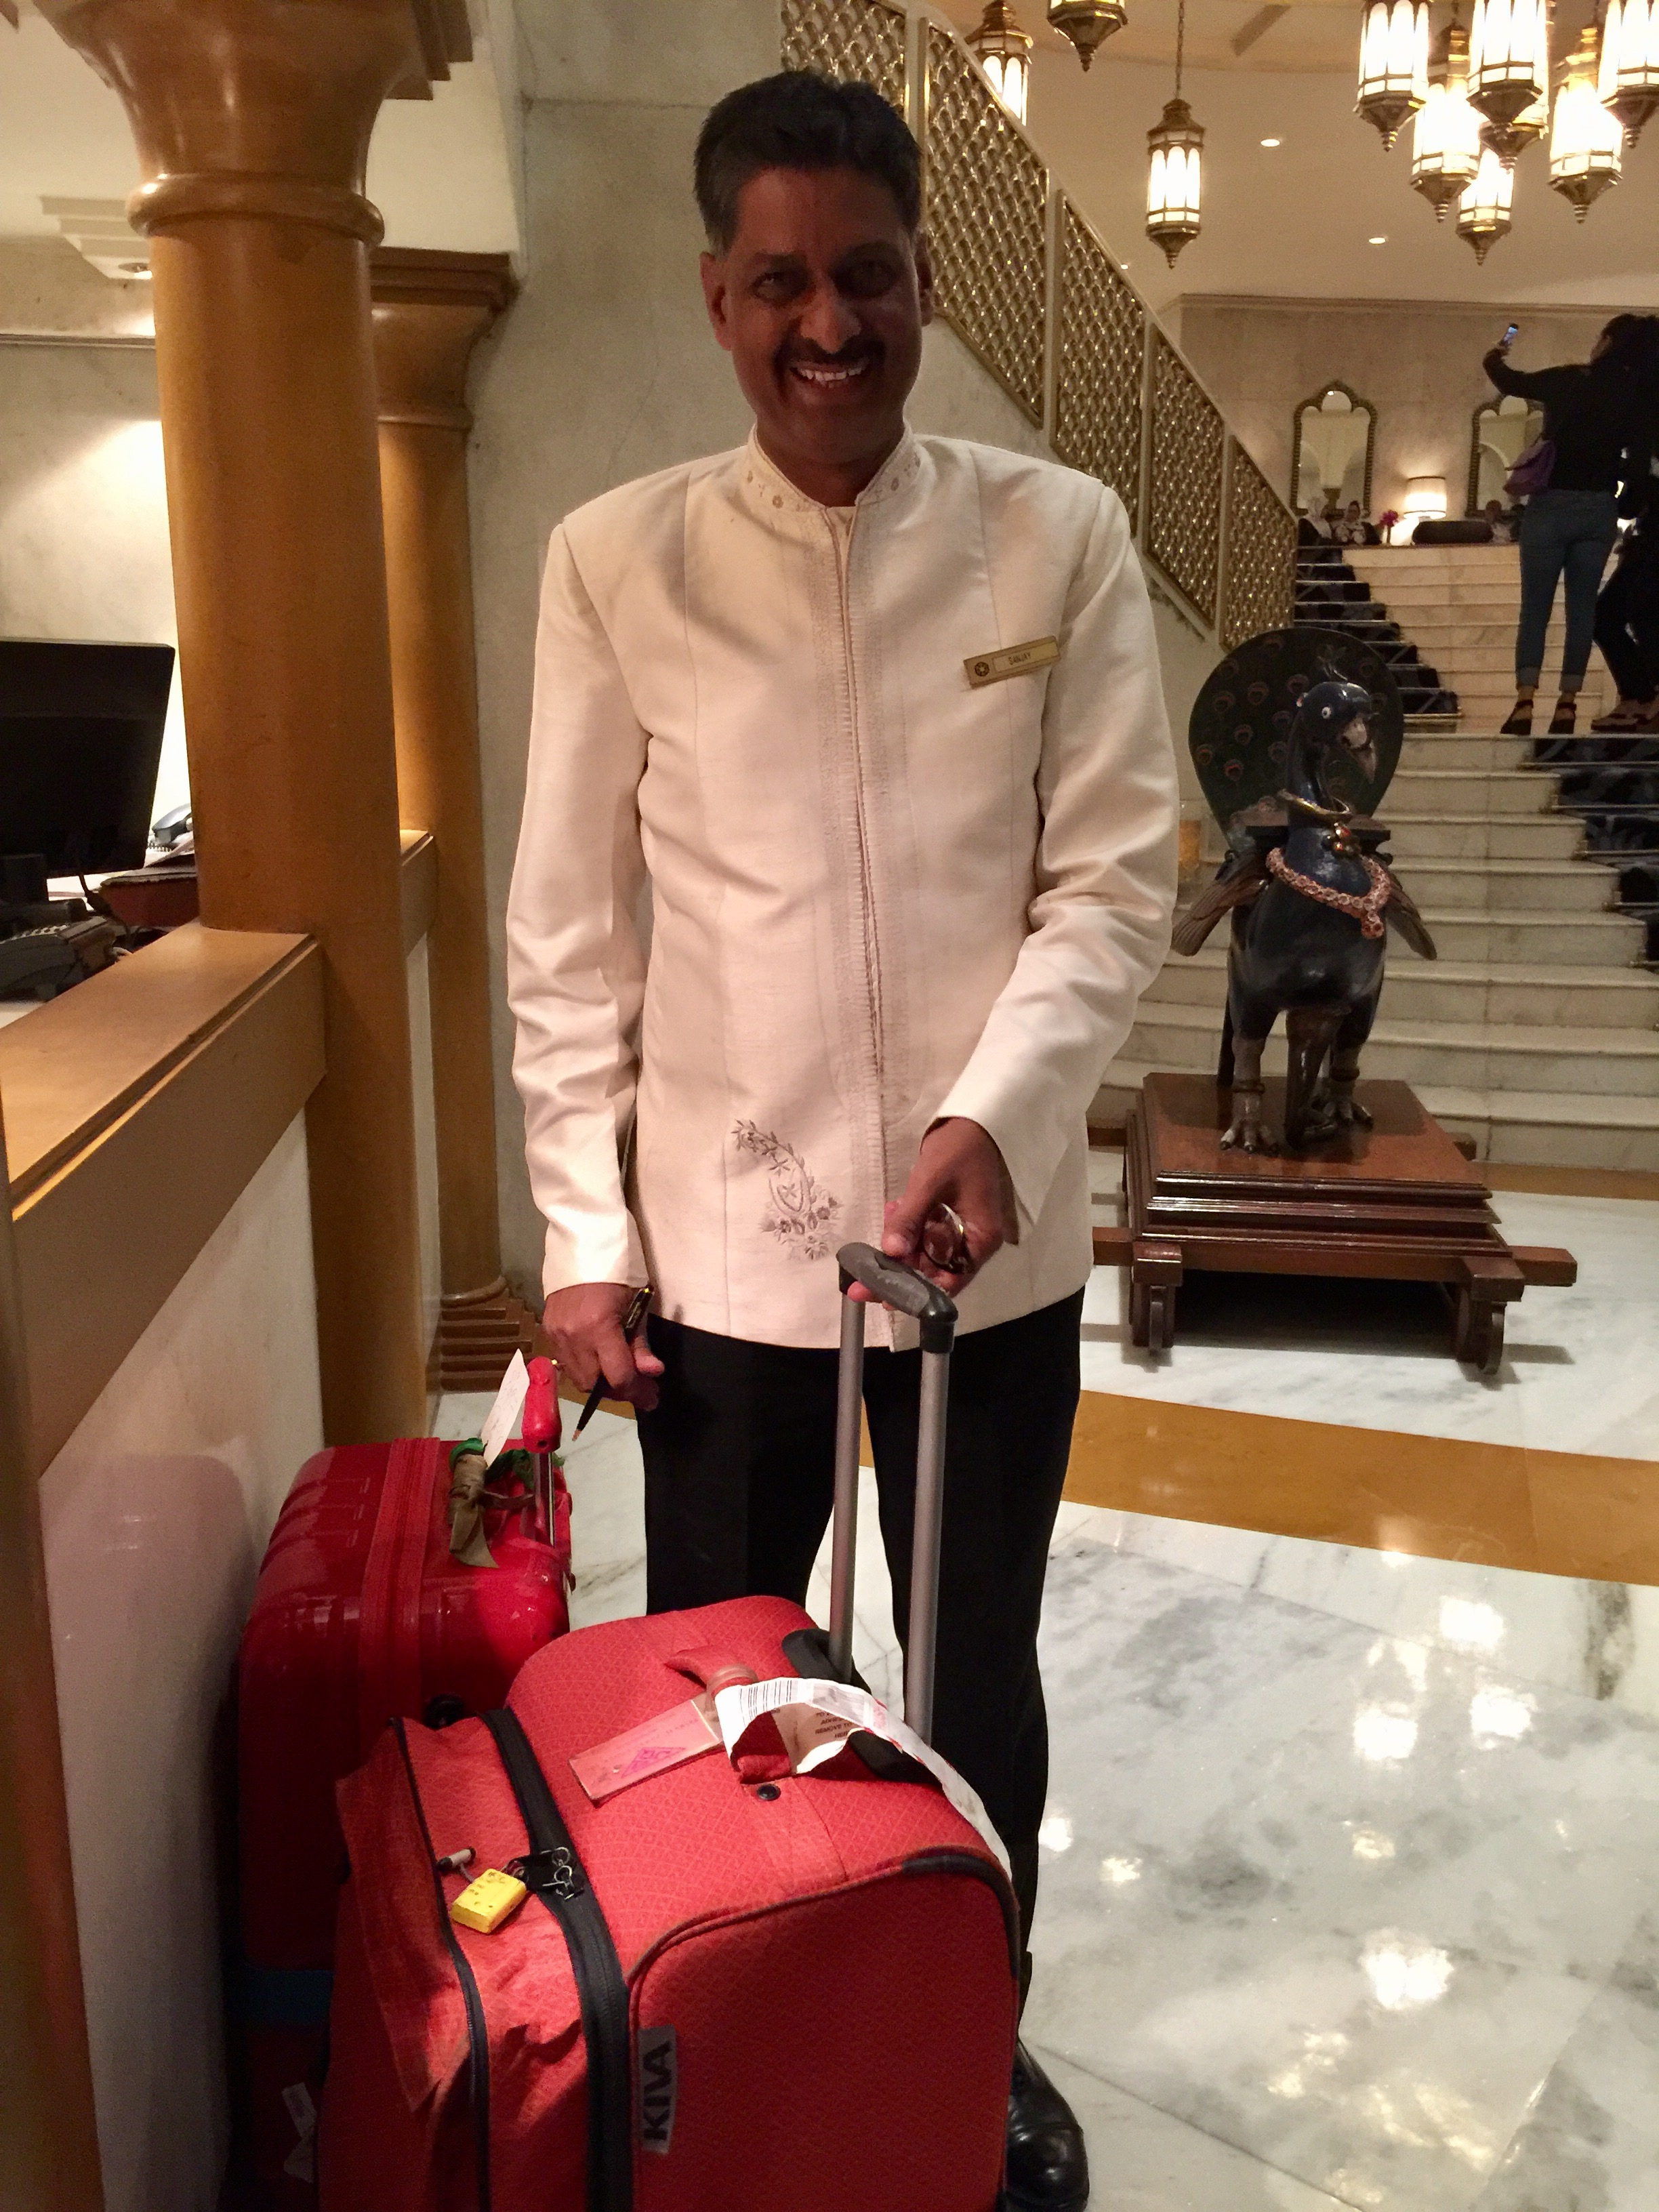 Best news of the day: Hotel Concierge with our delayed luggage! Whew!